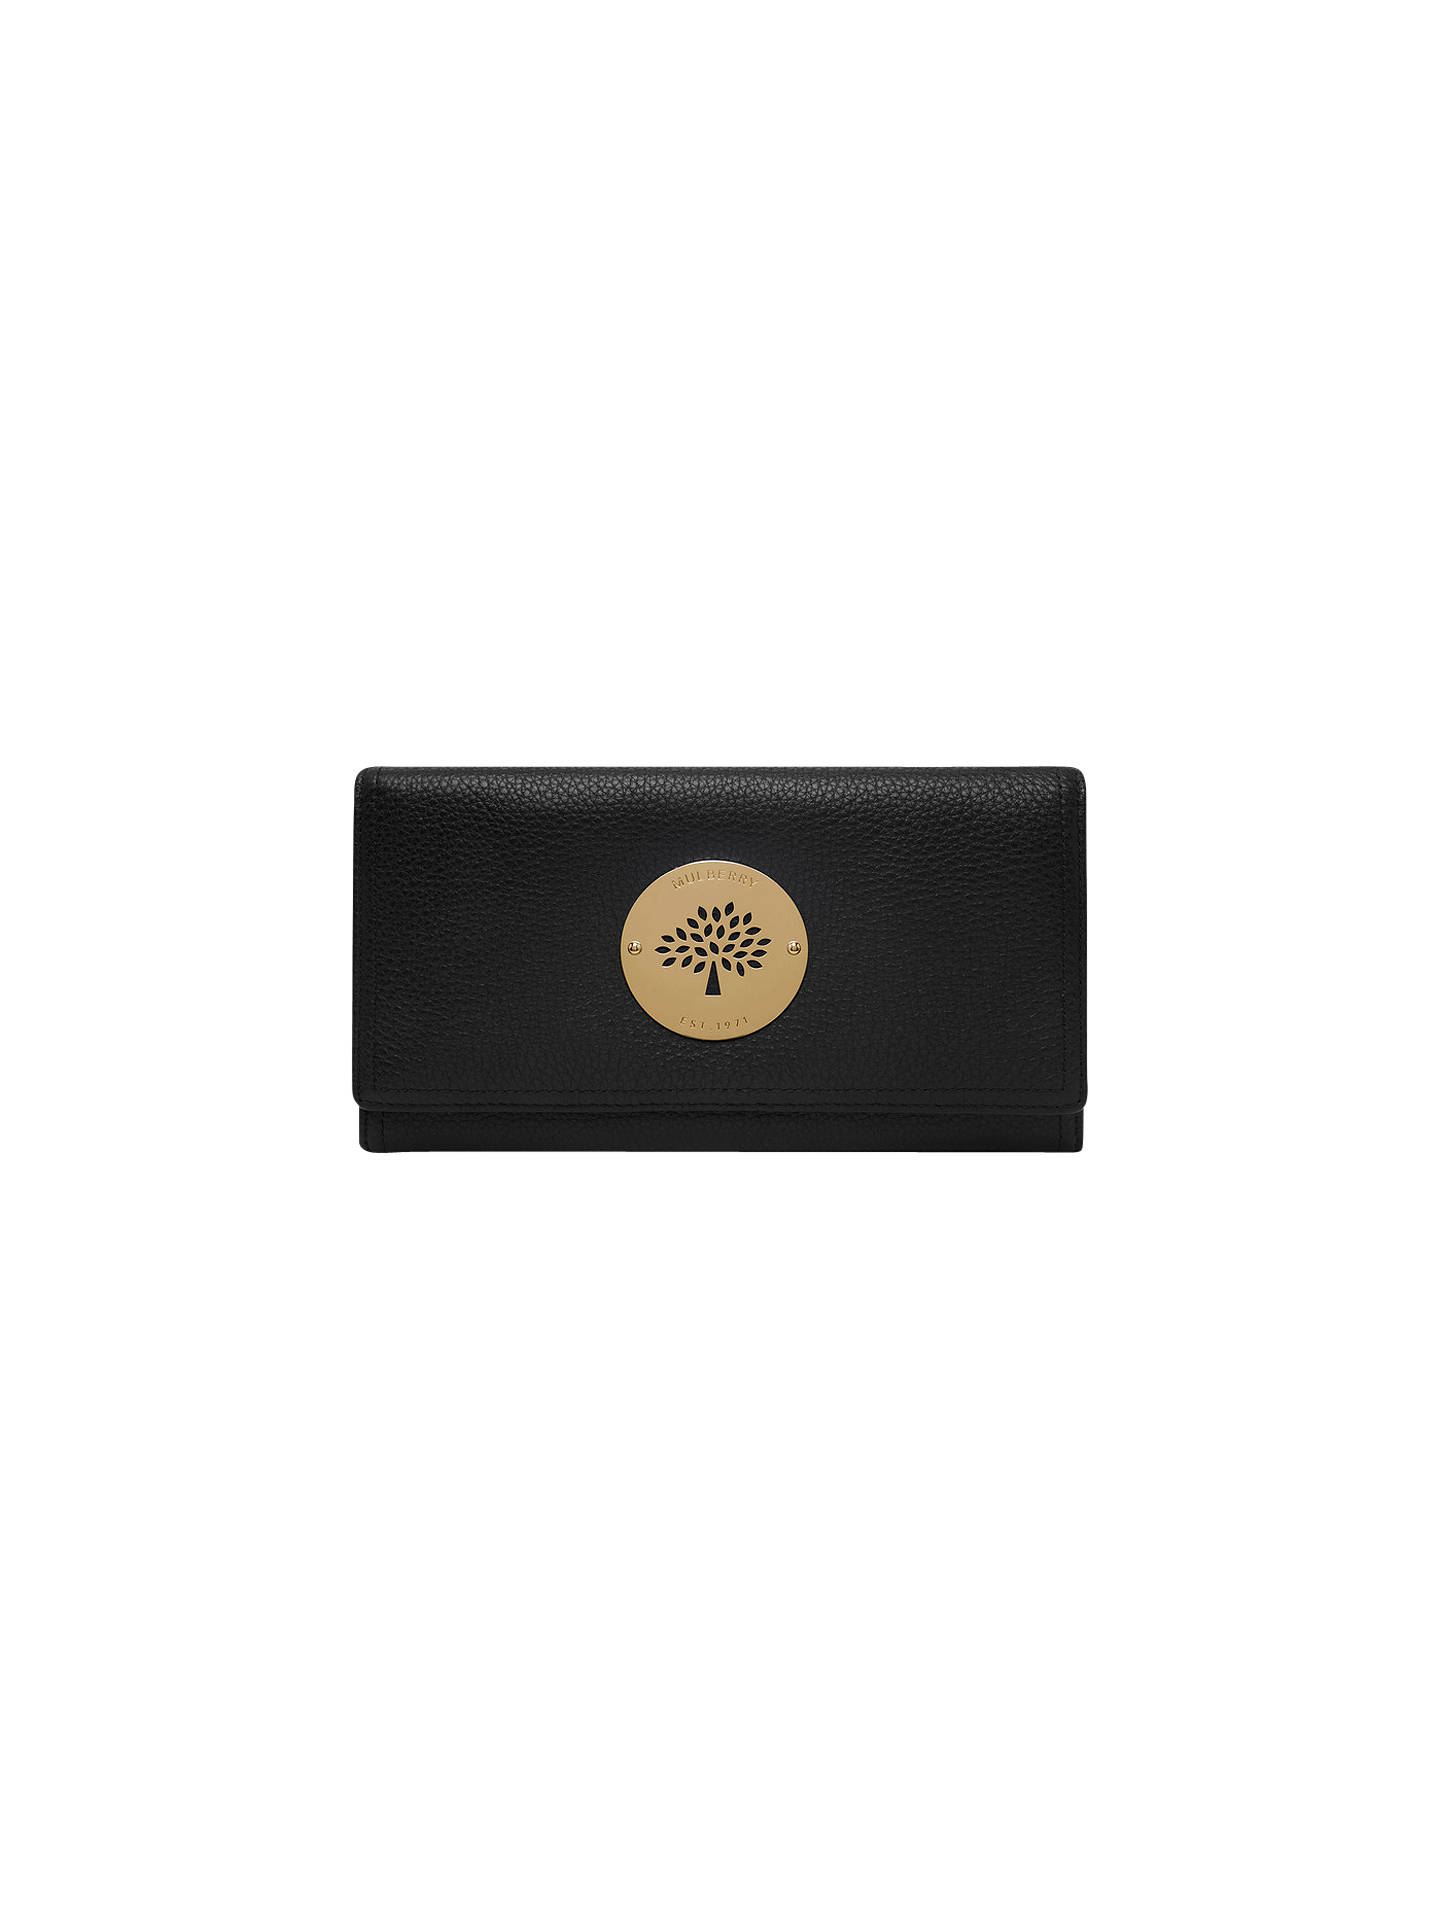 d70baee2f6 Buy Mulberry Daria Leather Continental Wallet, Black Online at  johnlewis.com ...